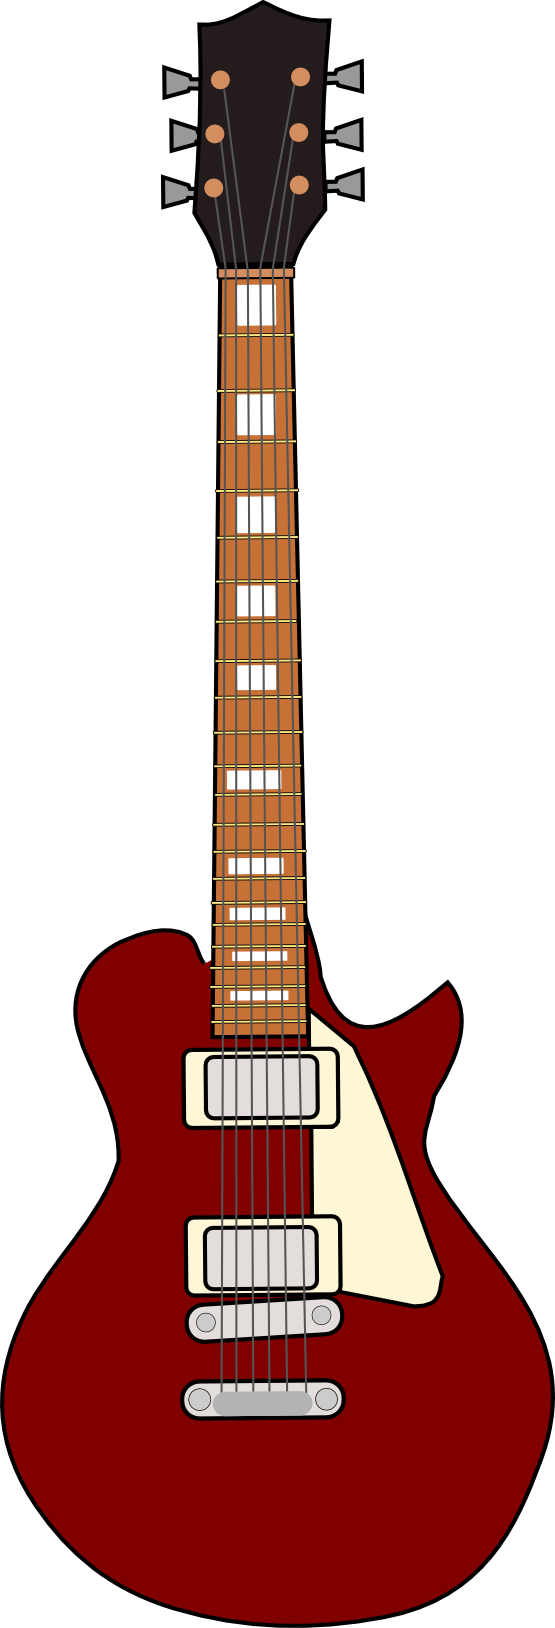 Free To Use Amp Public Domain Guitar Clip Art Page 2